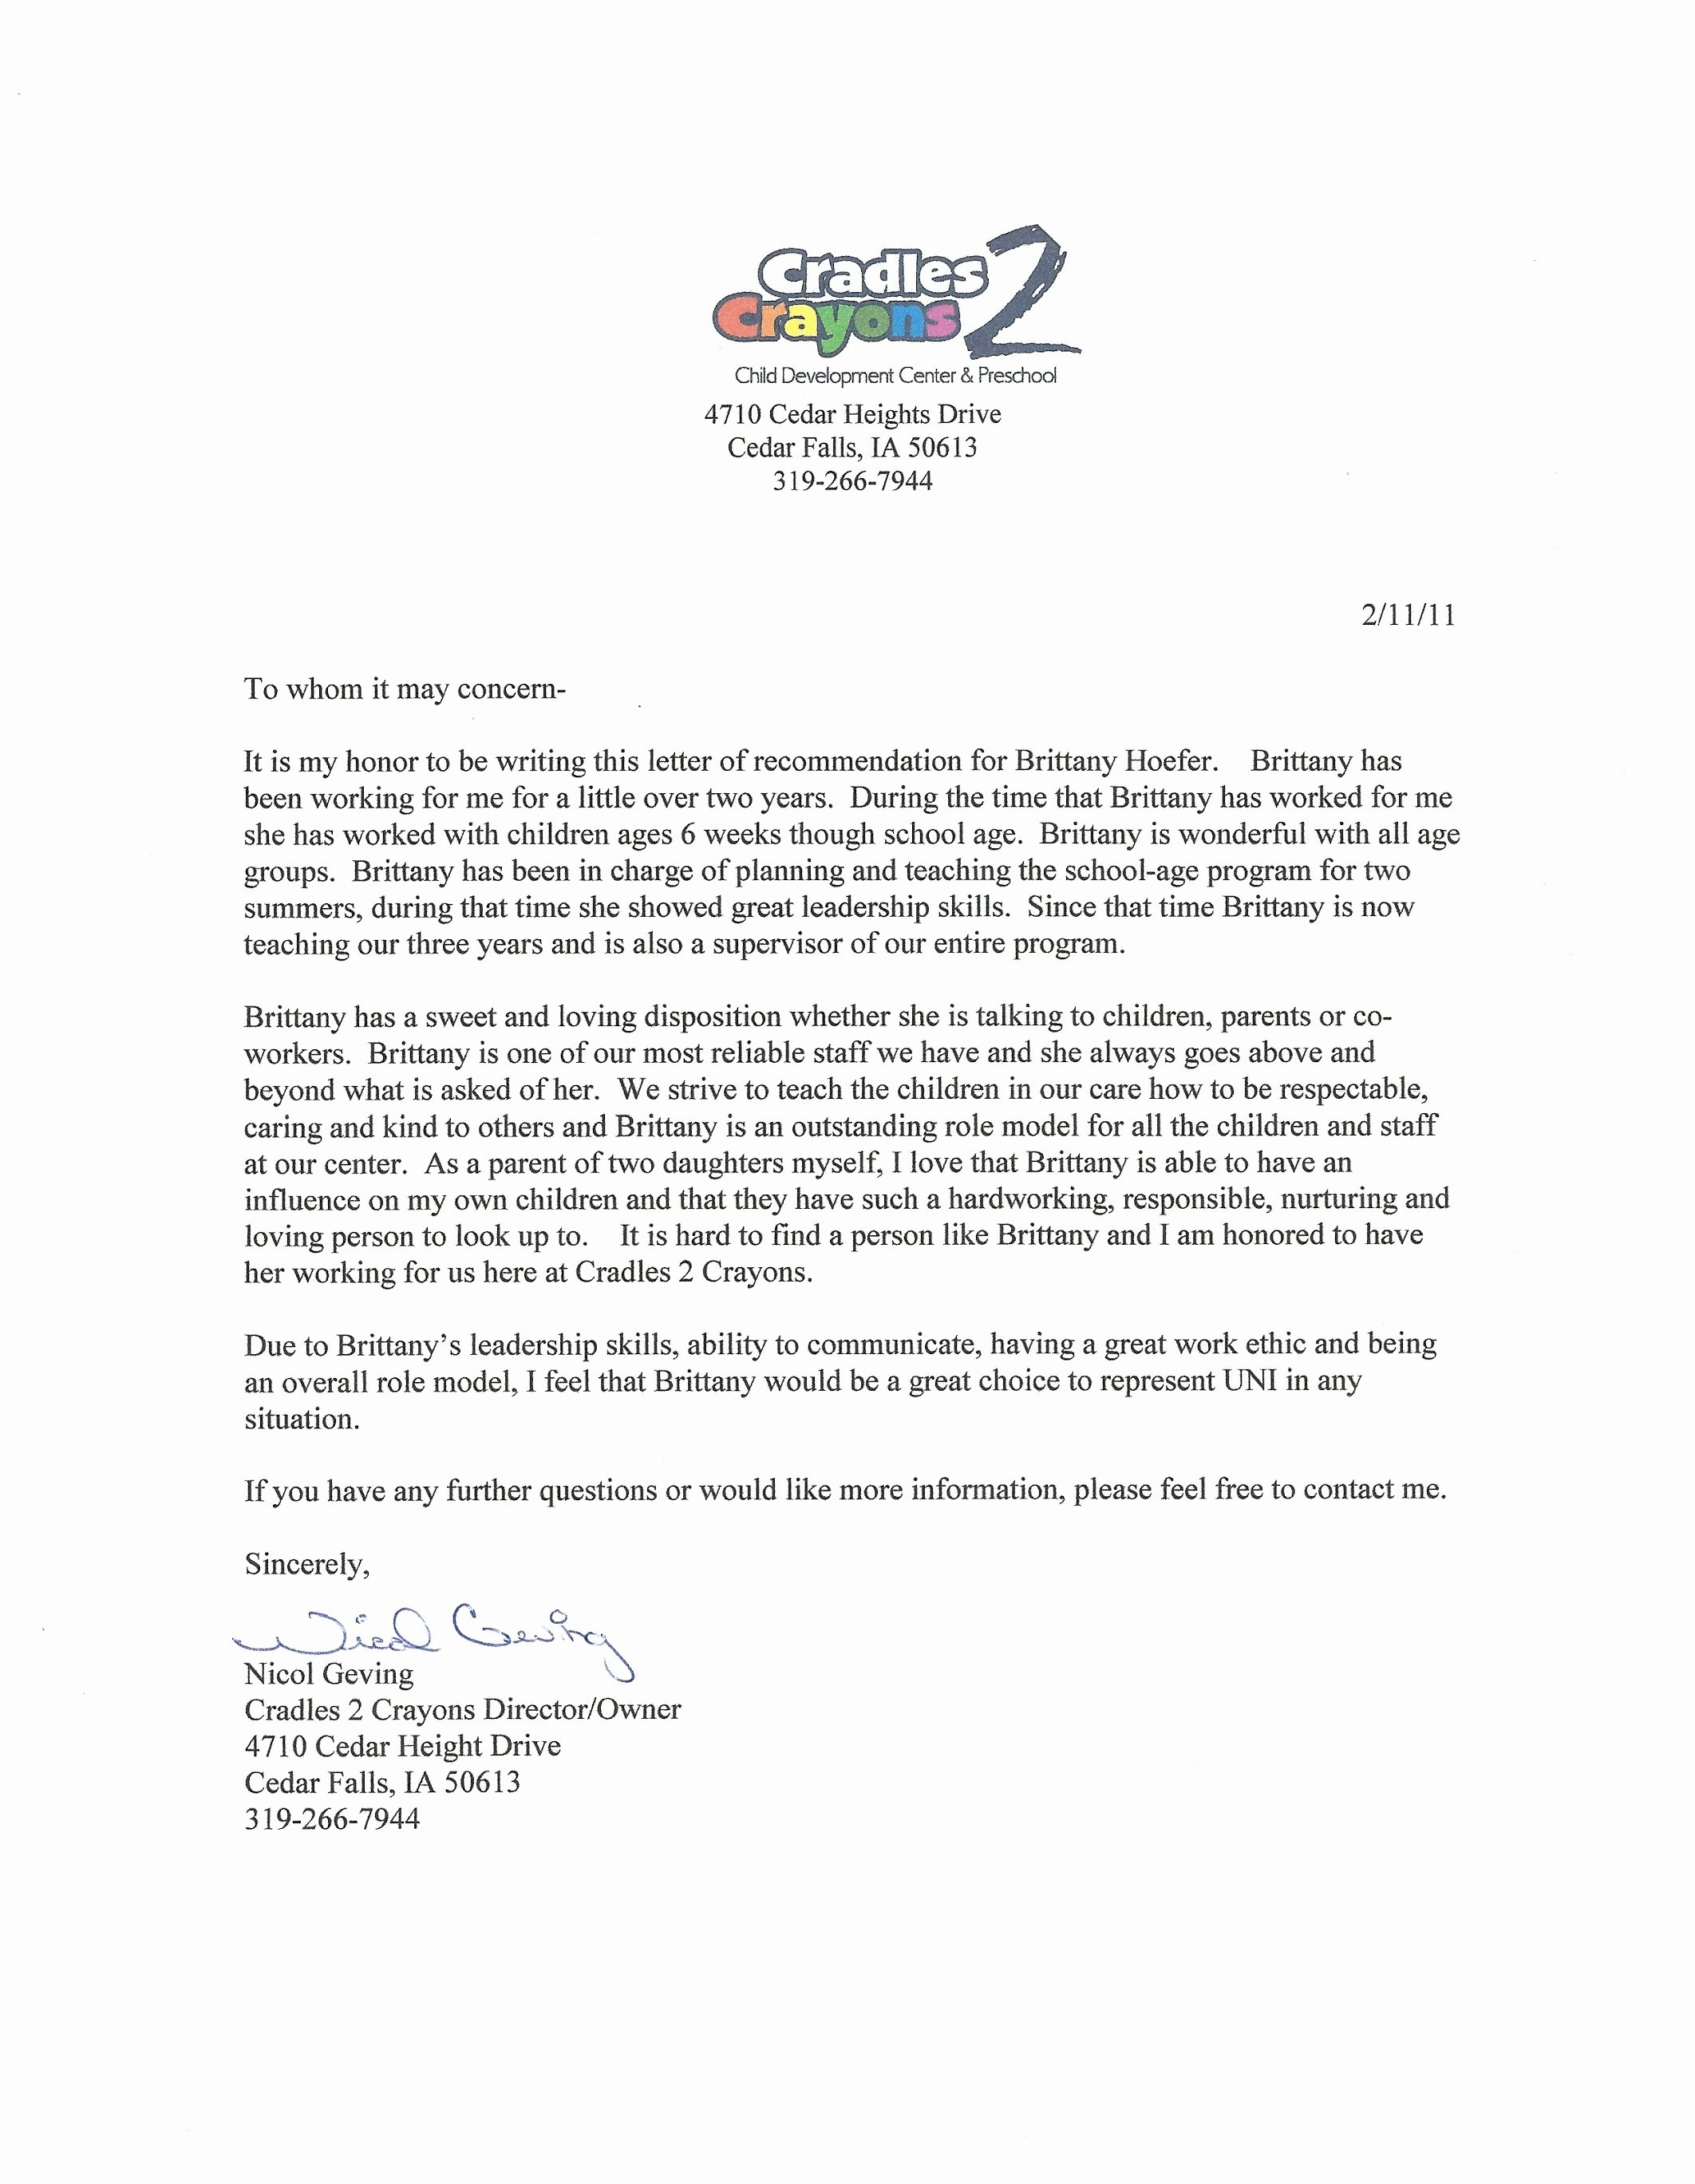 Daycare Letter Of Recommendation Unique Daycare Director Nicol Geving Brittany Ann Hoefer